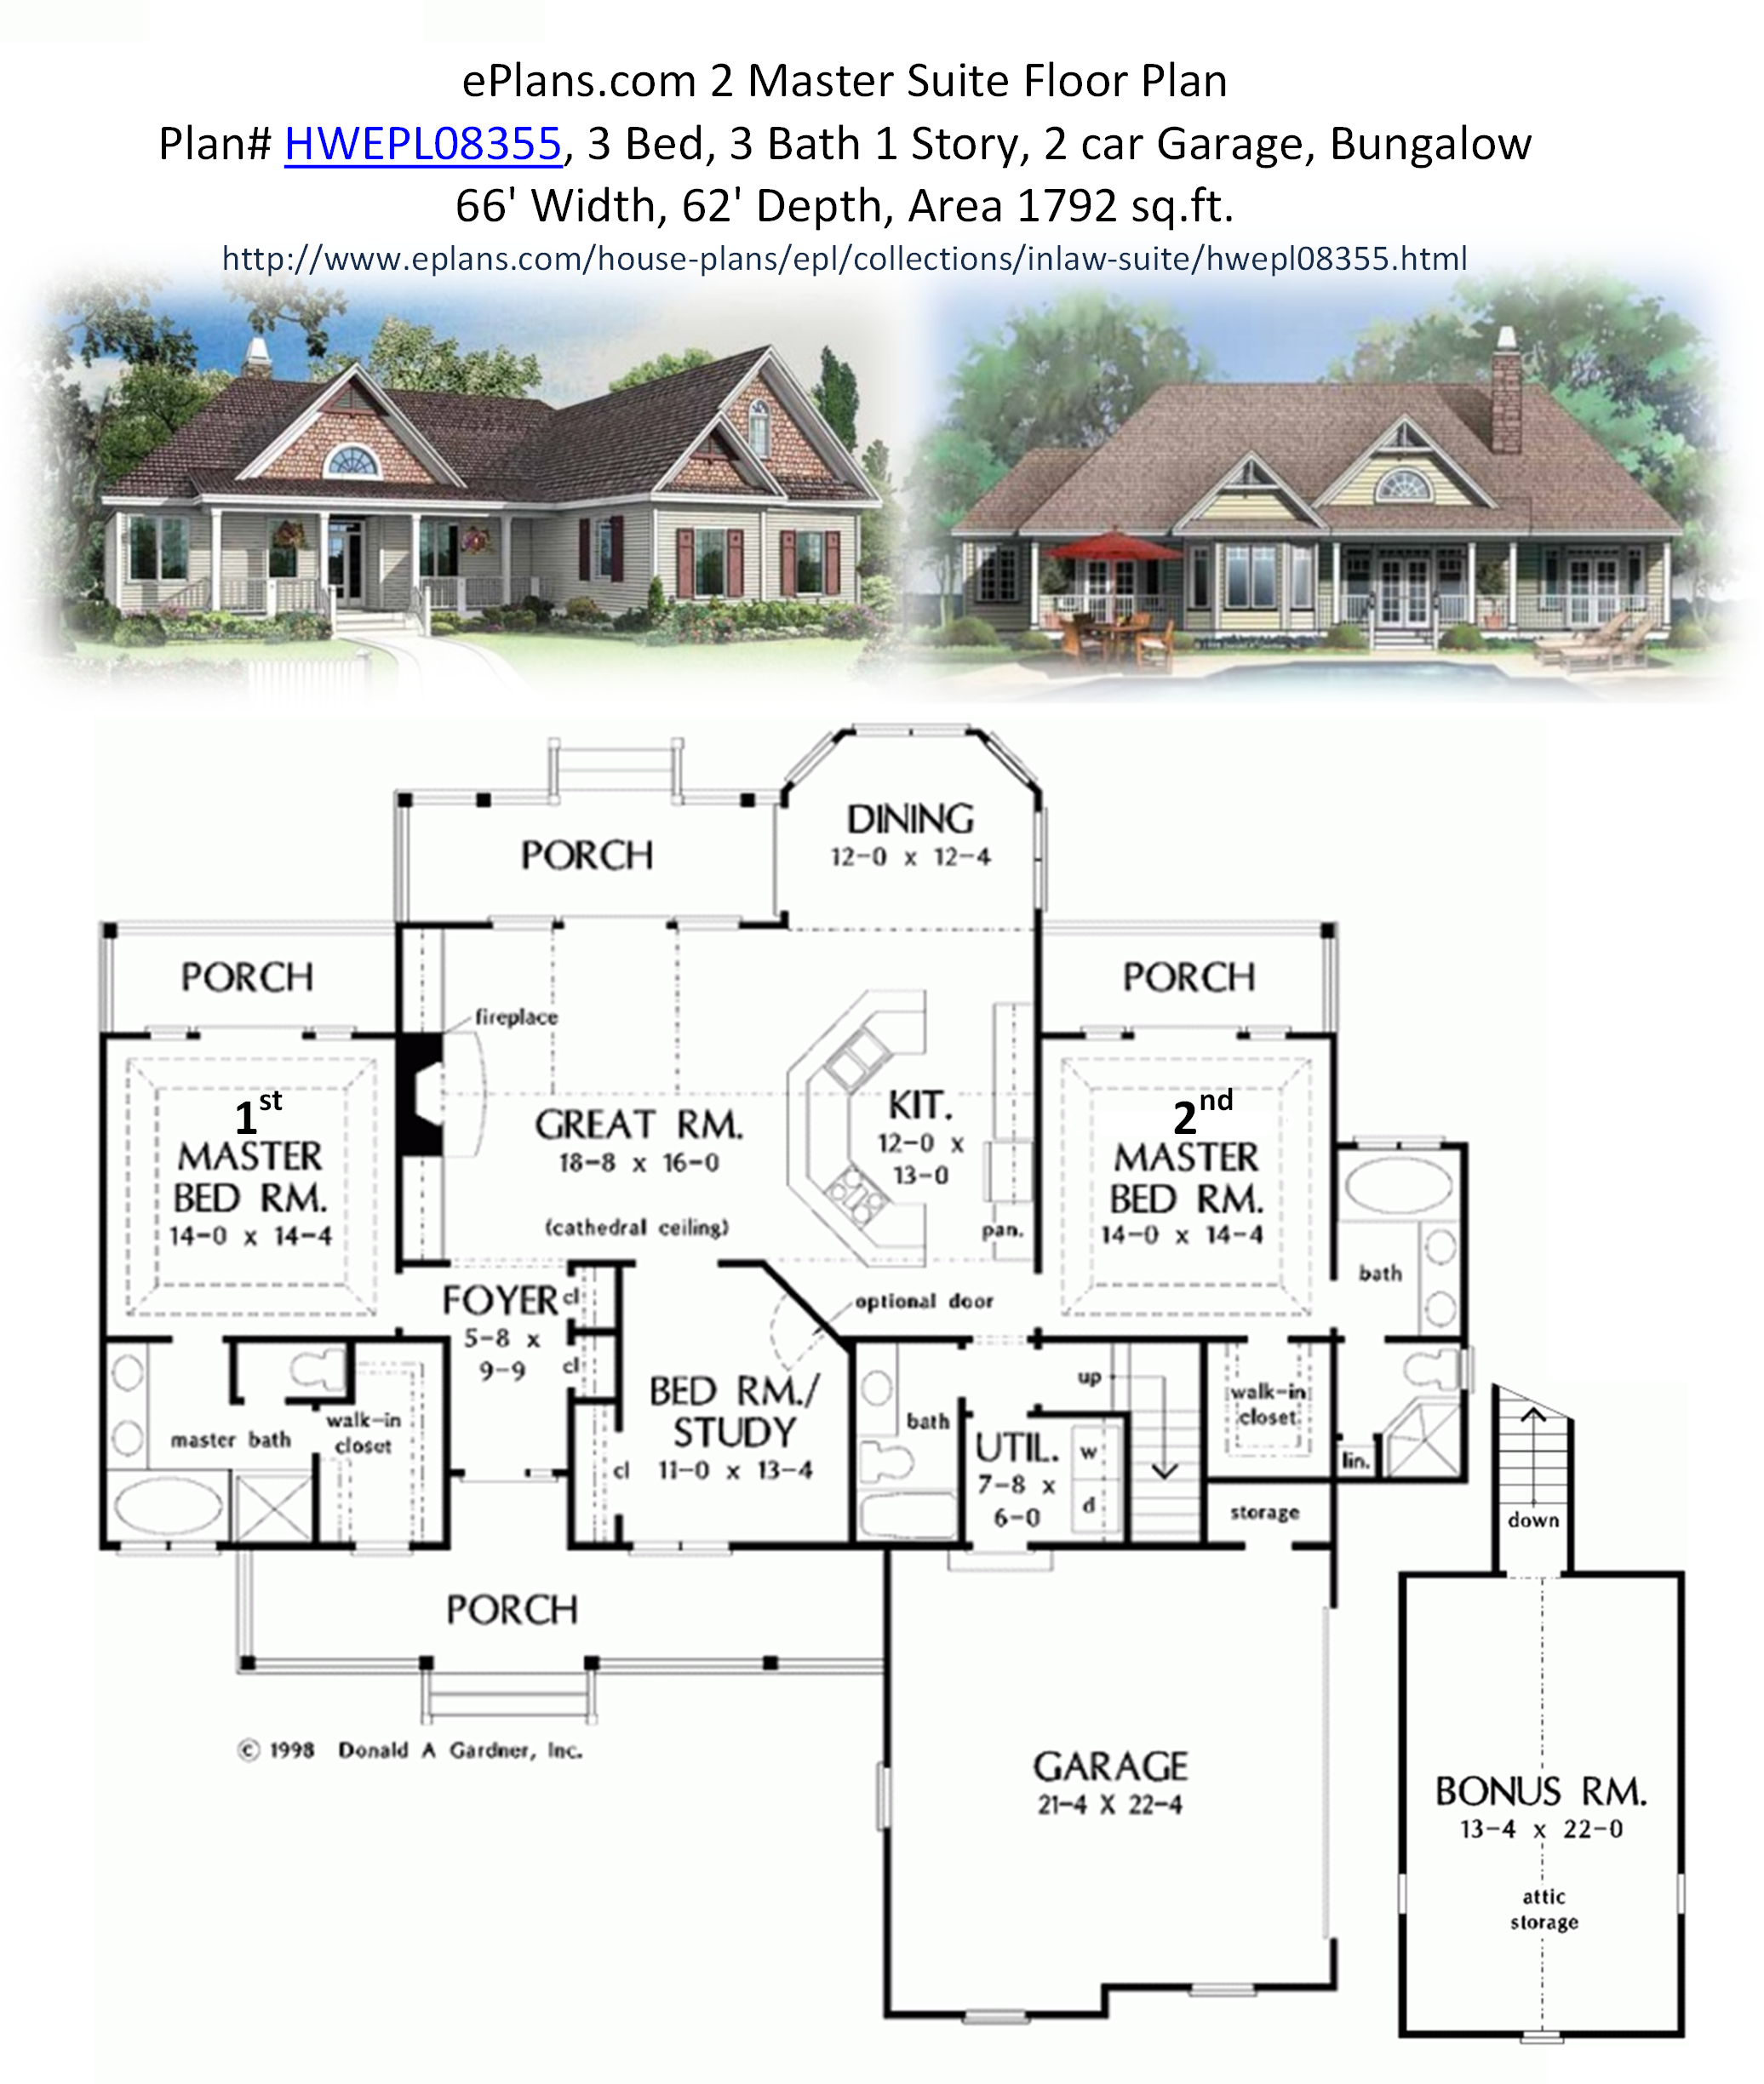 For Master Suite Bedroom House Plans Html on house floor plans with 2 master suites, best master suite, house plans 2 master bedroom floor plans, house master bedroom interior design, house plans with dual master suites, 2 bedroom house plans with master suite,